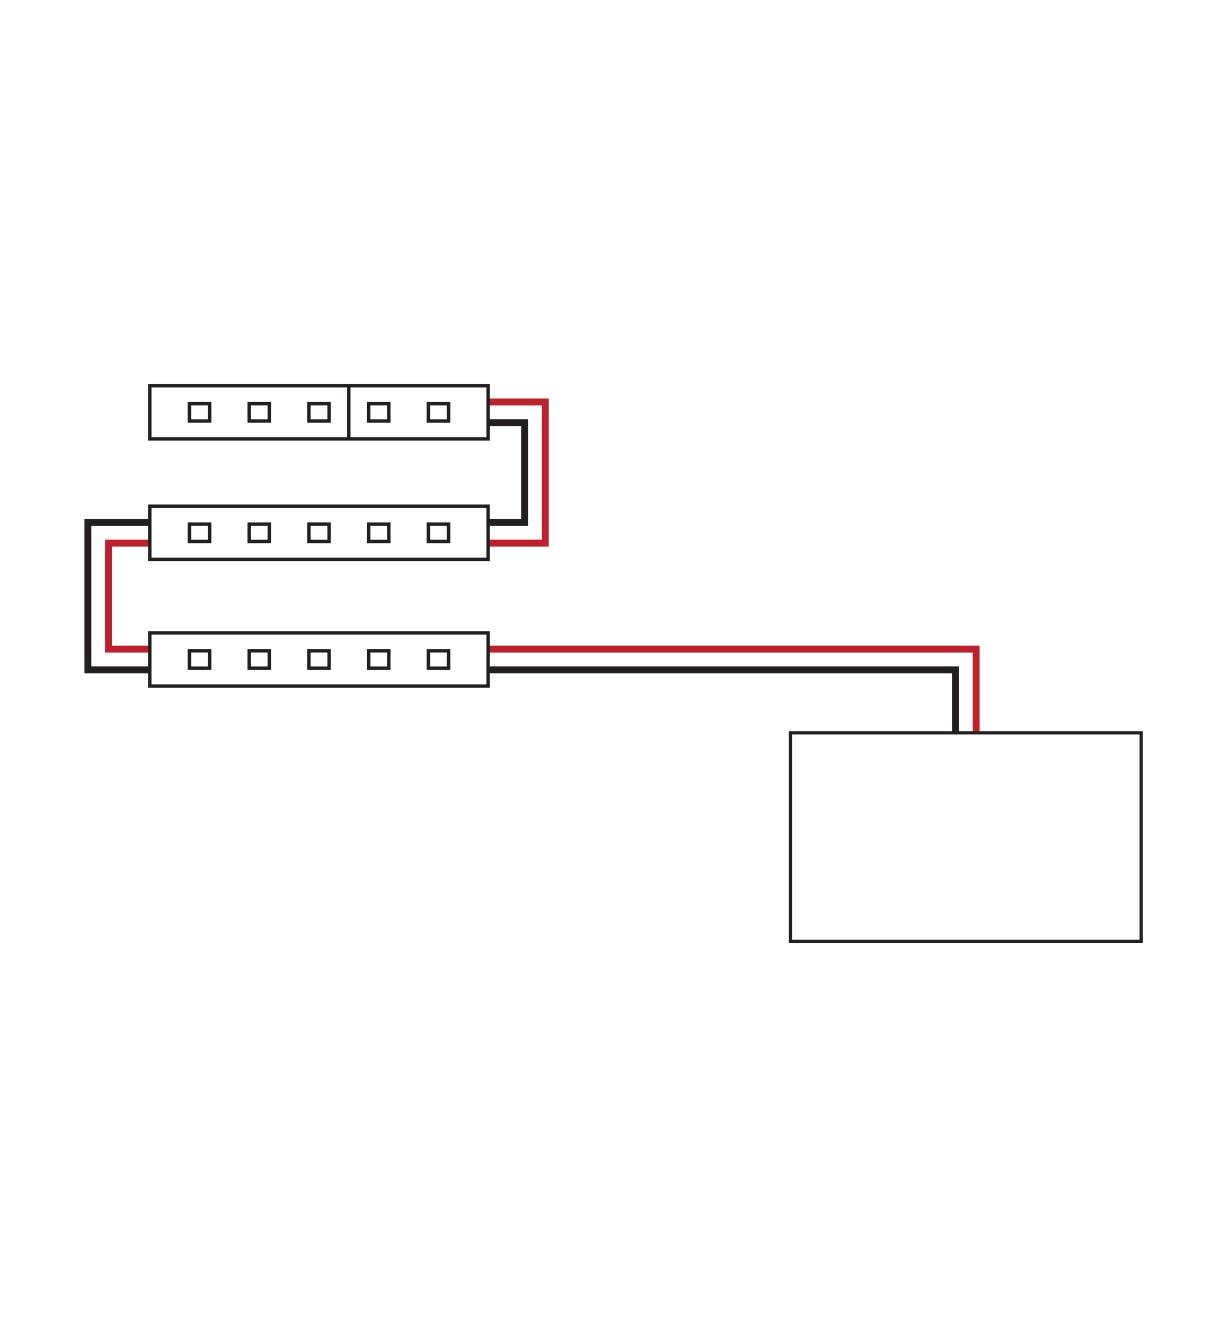 Diagram showing tape lights attached to power supply in a straight run configuration